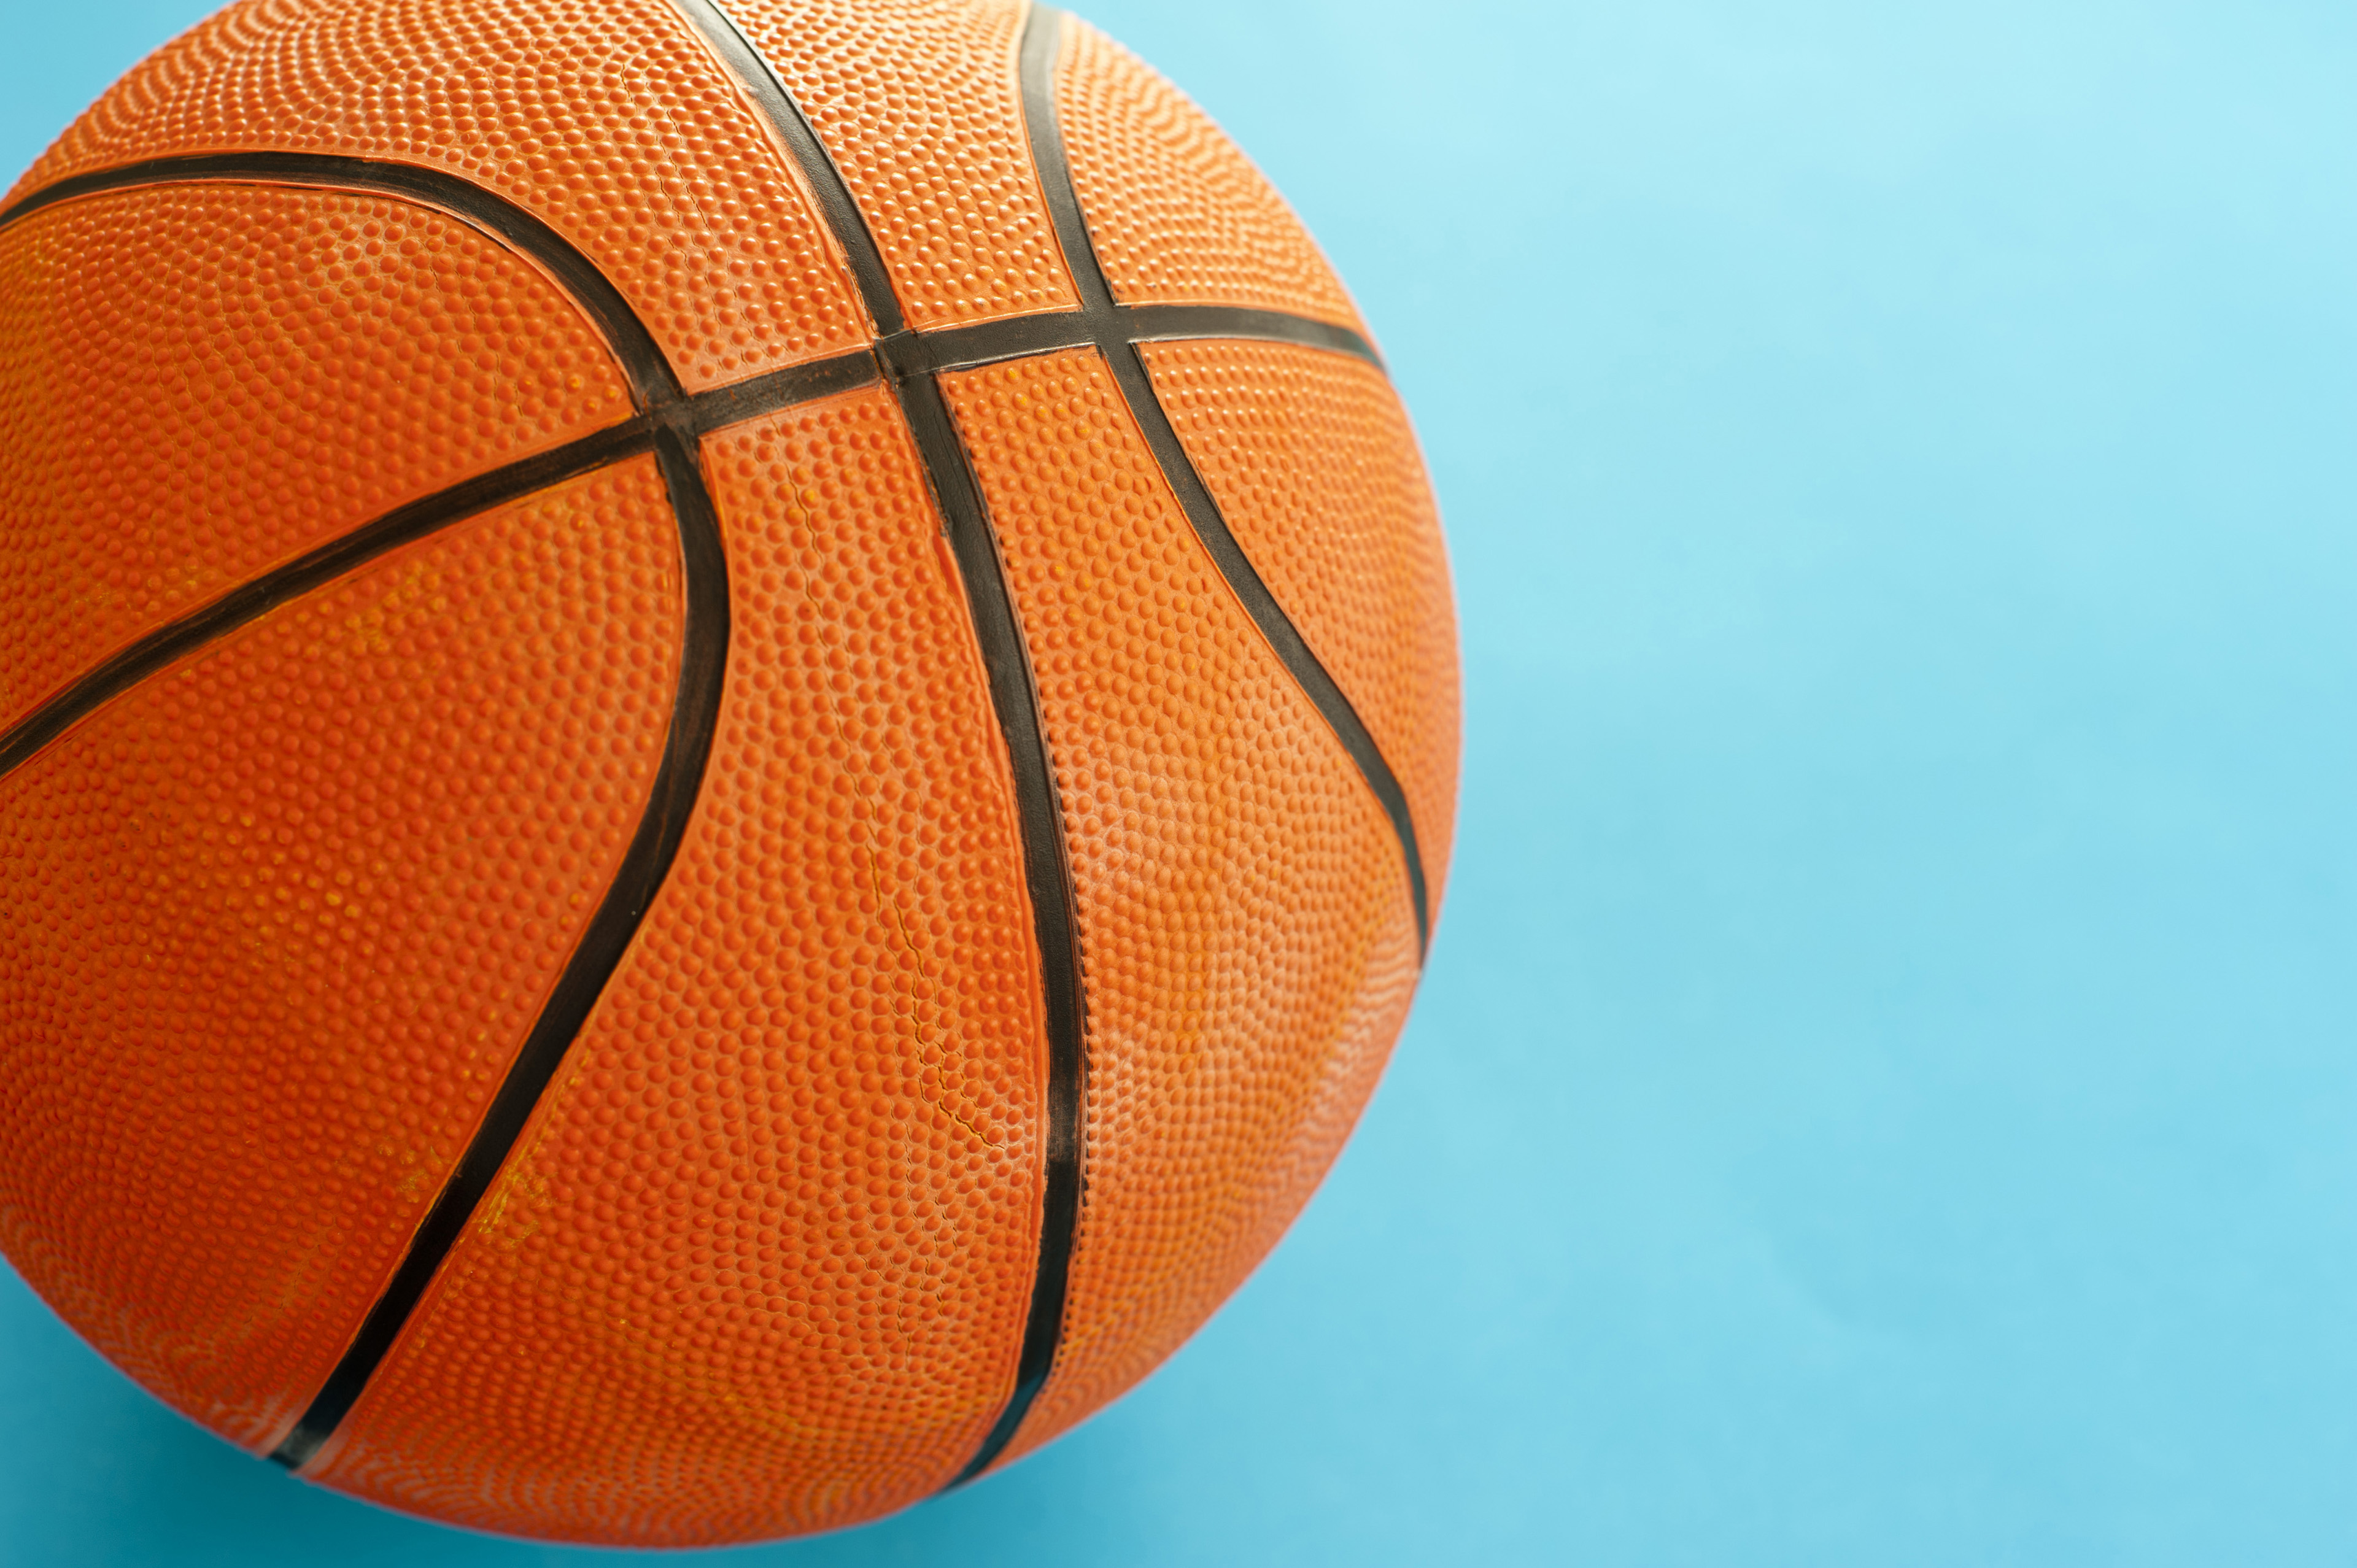 Close up One Orange Basketball Ball Isolated on Sky Blue Background with Copy Space for Texts